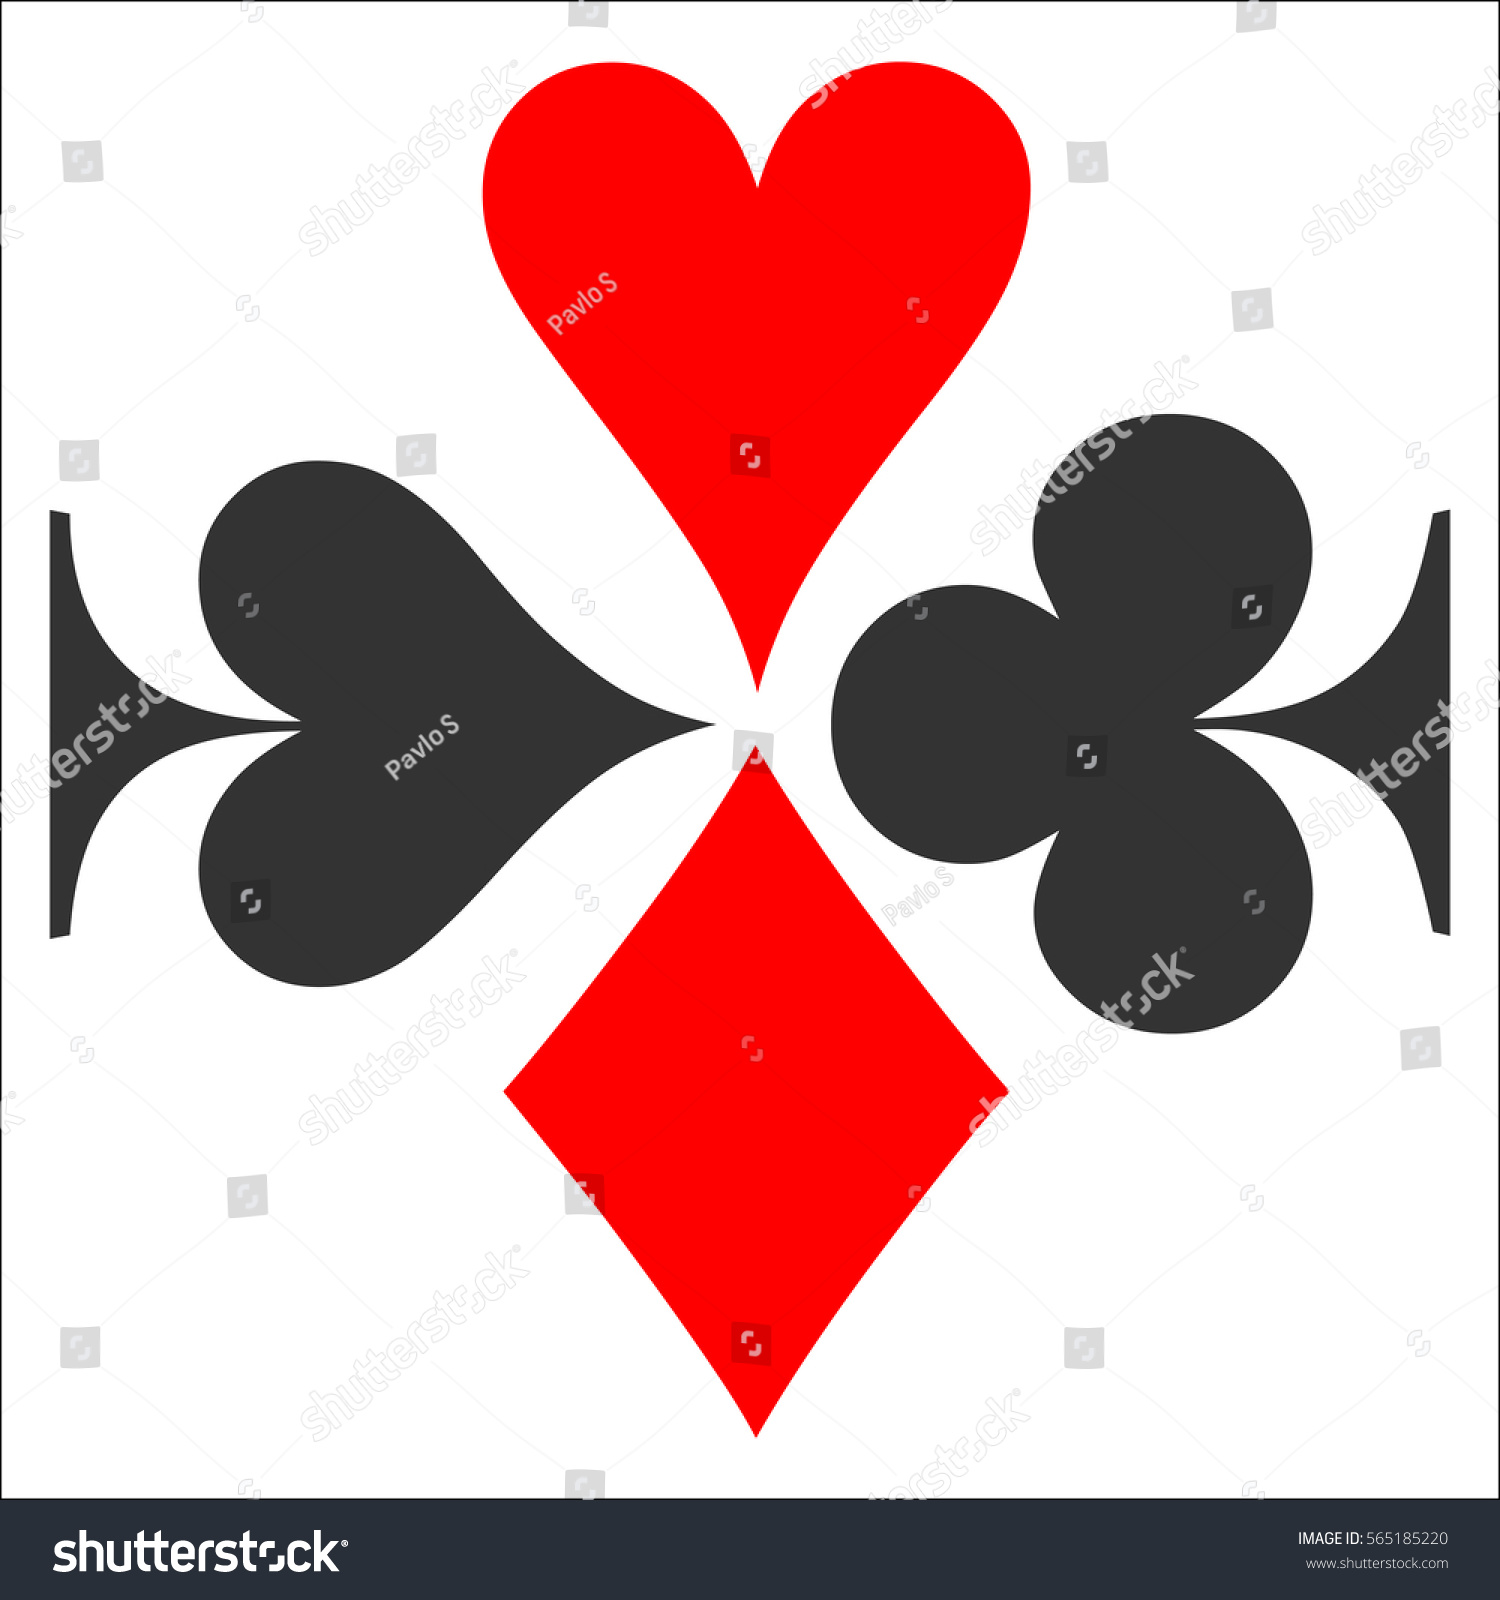 Colored card suit icon vector playing stock vector 565185220 colored card suit icon vector playing cards symbols vector set icon symbol suit biocorpaavc